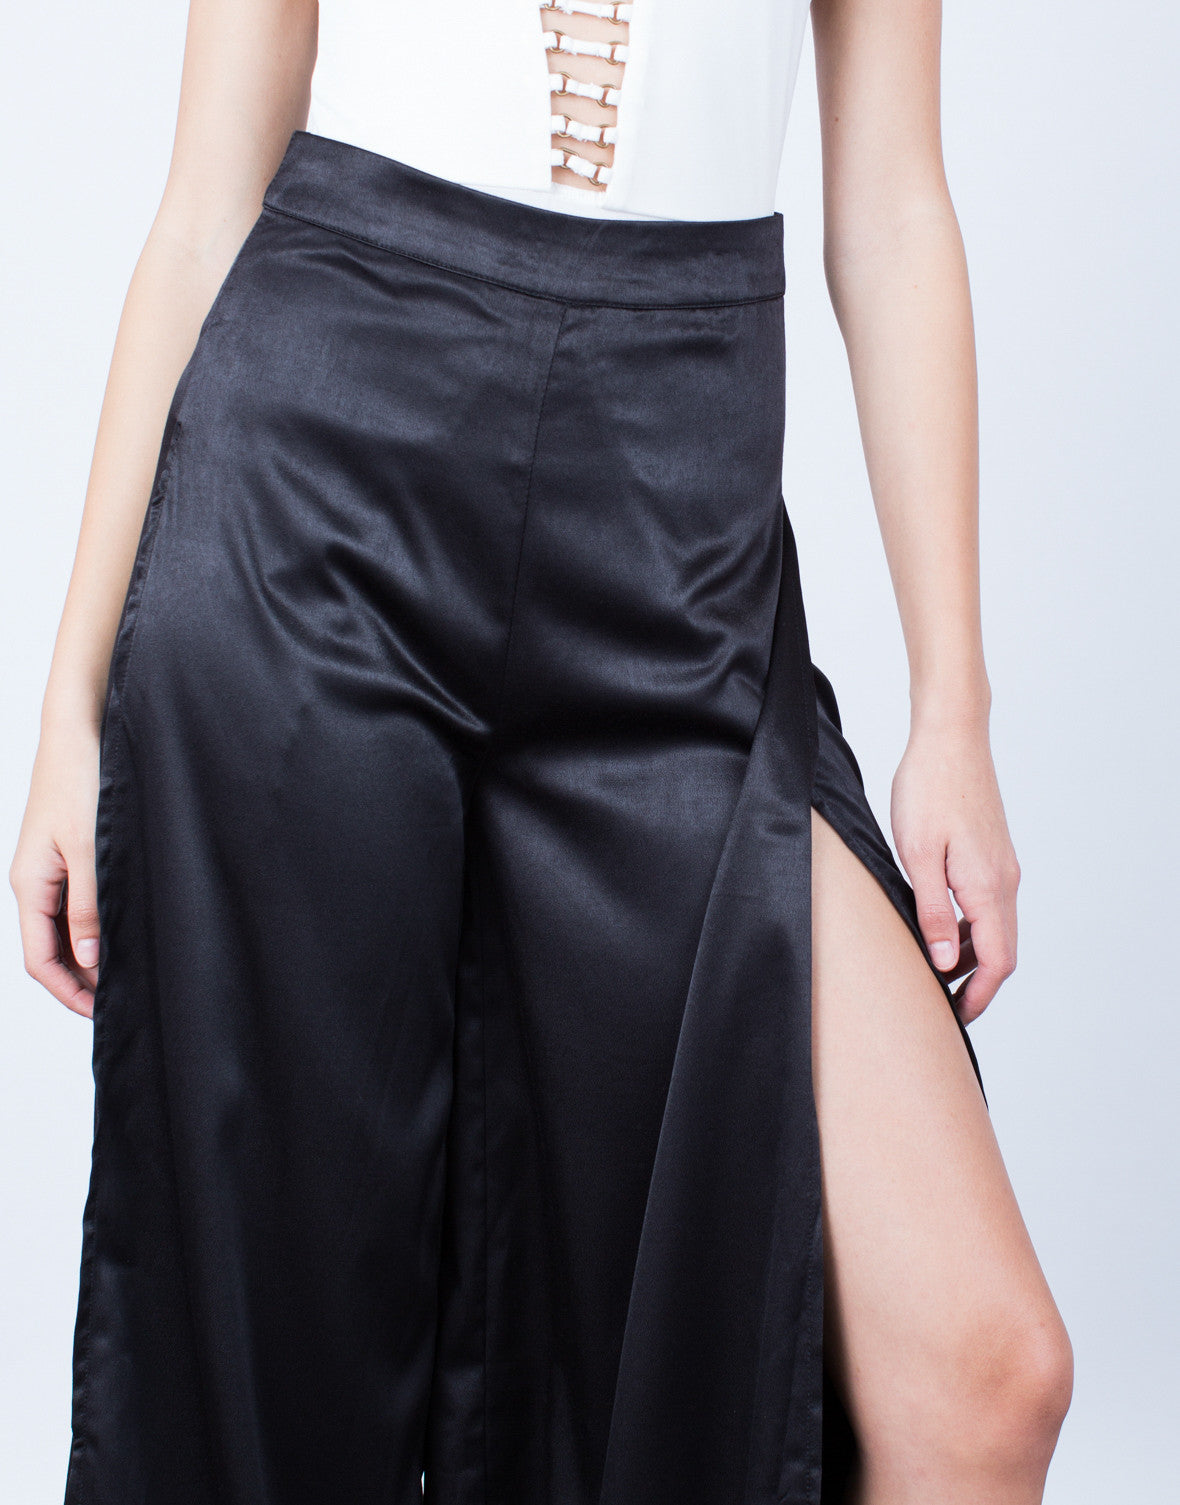 Detail of Make a Statement Satin Pants